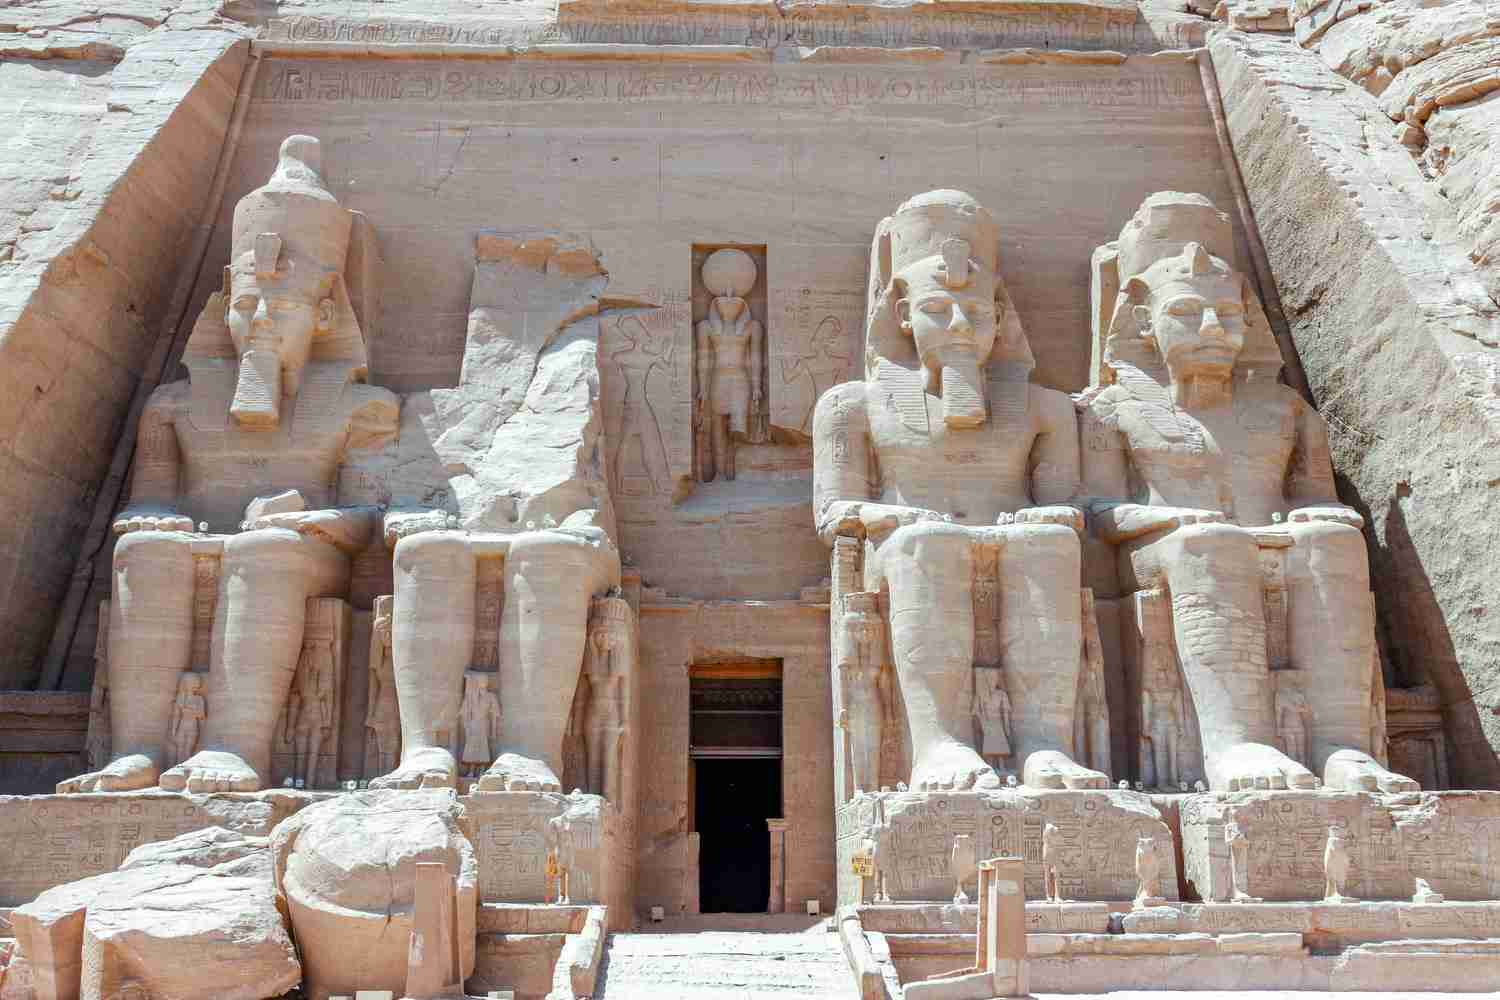 The Abu Simbel temples in Egypt